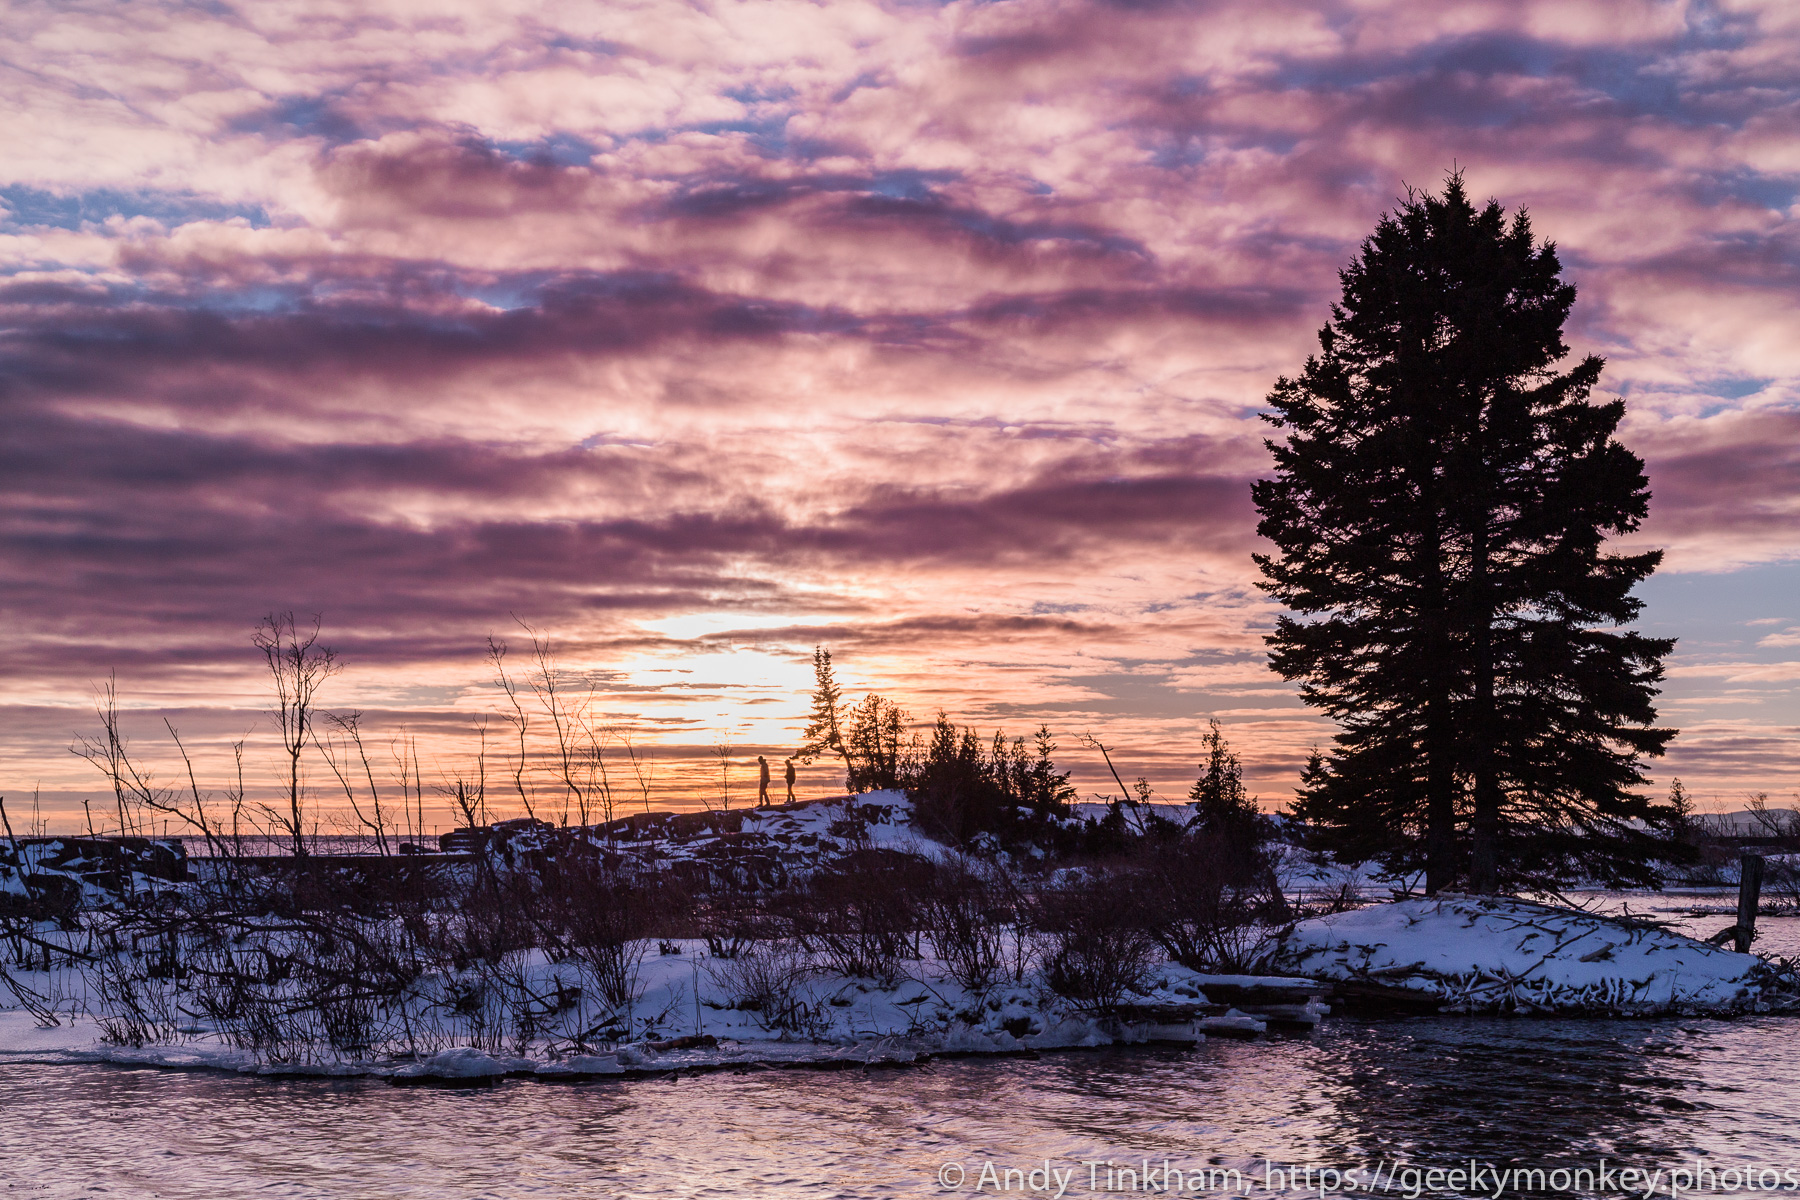 2 silhouetted people walk back on a snowy lake show under a purple and orange sunset